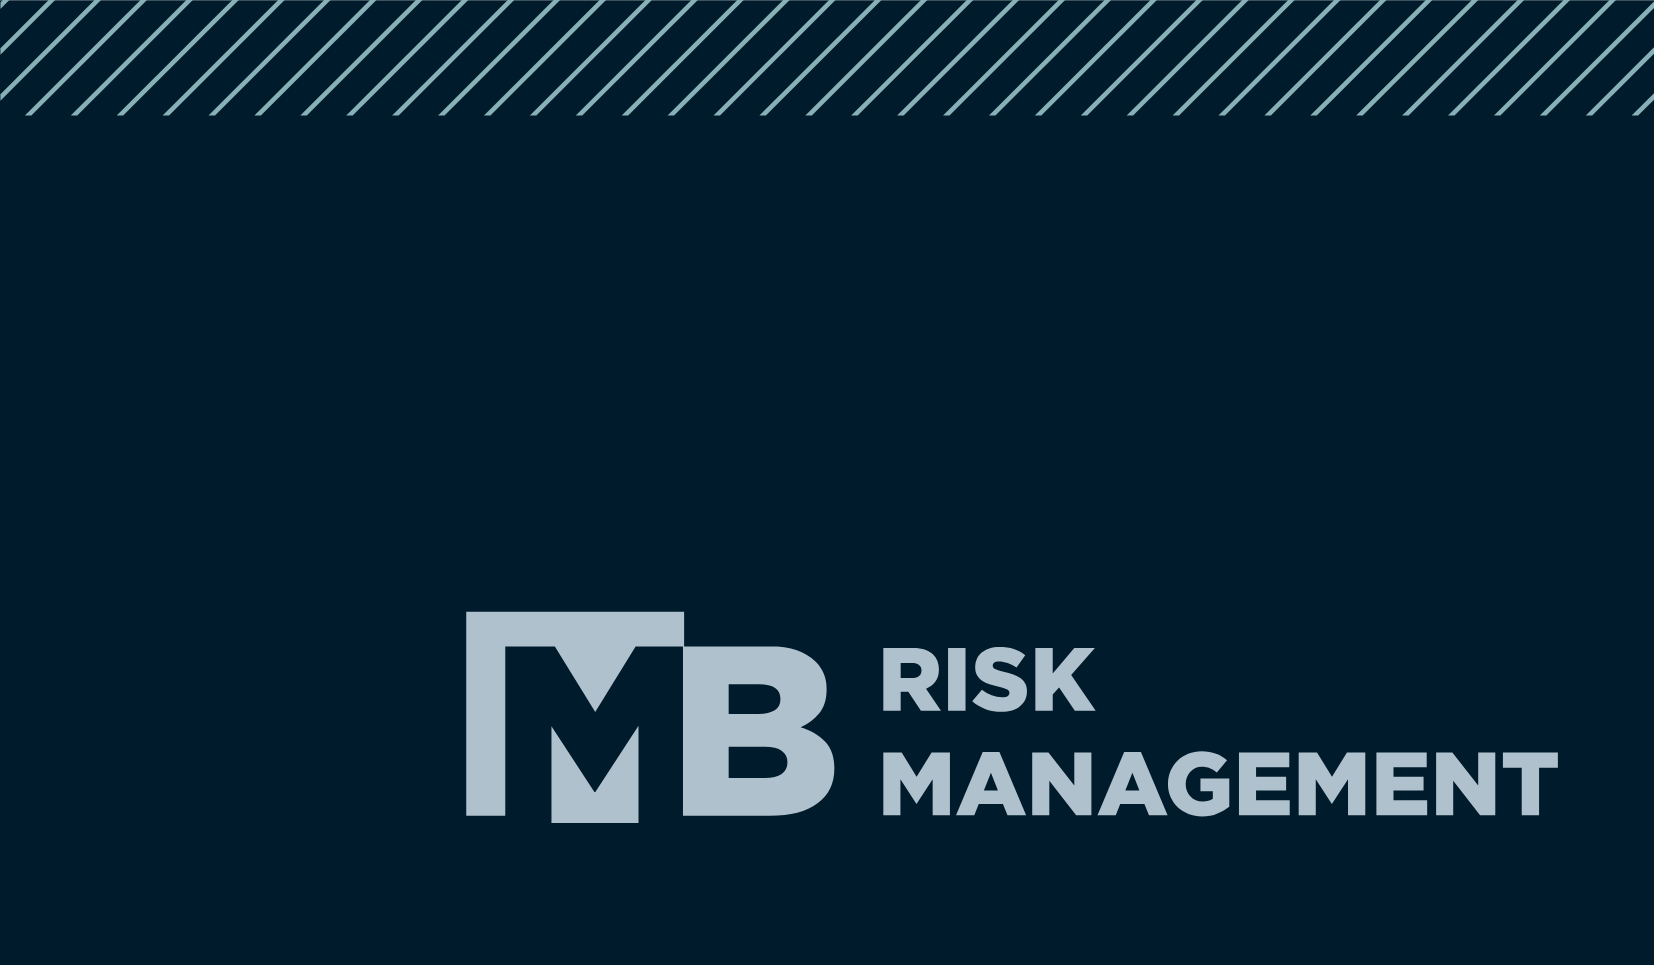 Propr Agency's MB Risk Management Brand Strategy, Brand Identity, Web Design & Development, Digital & Print Design